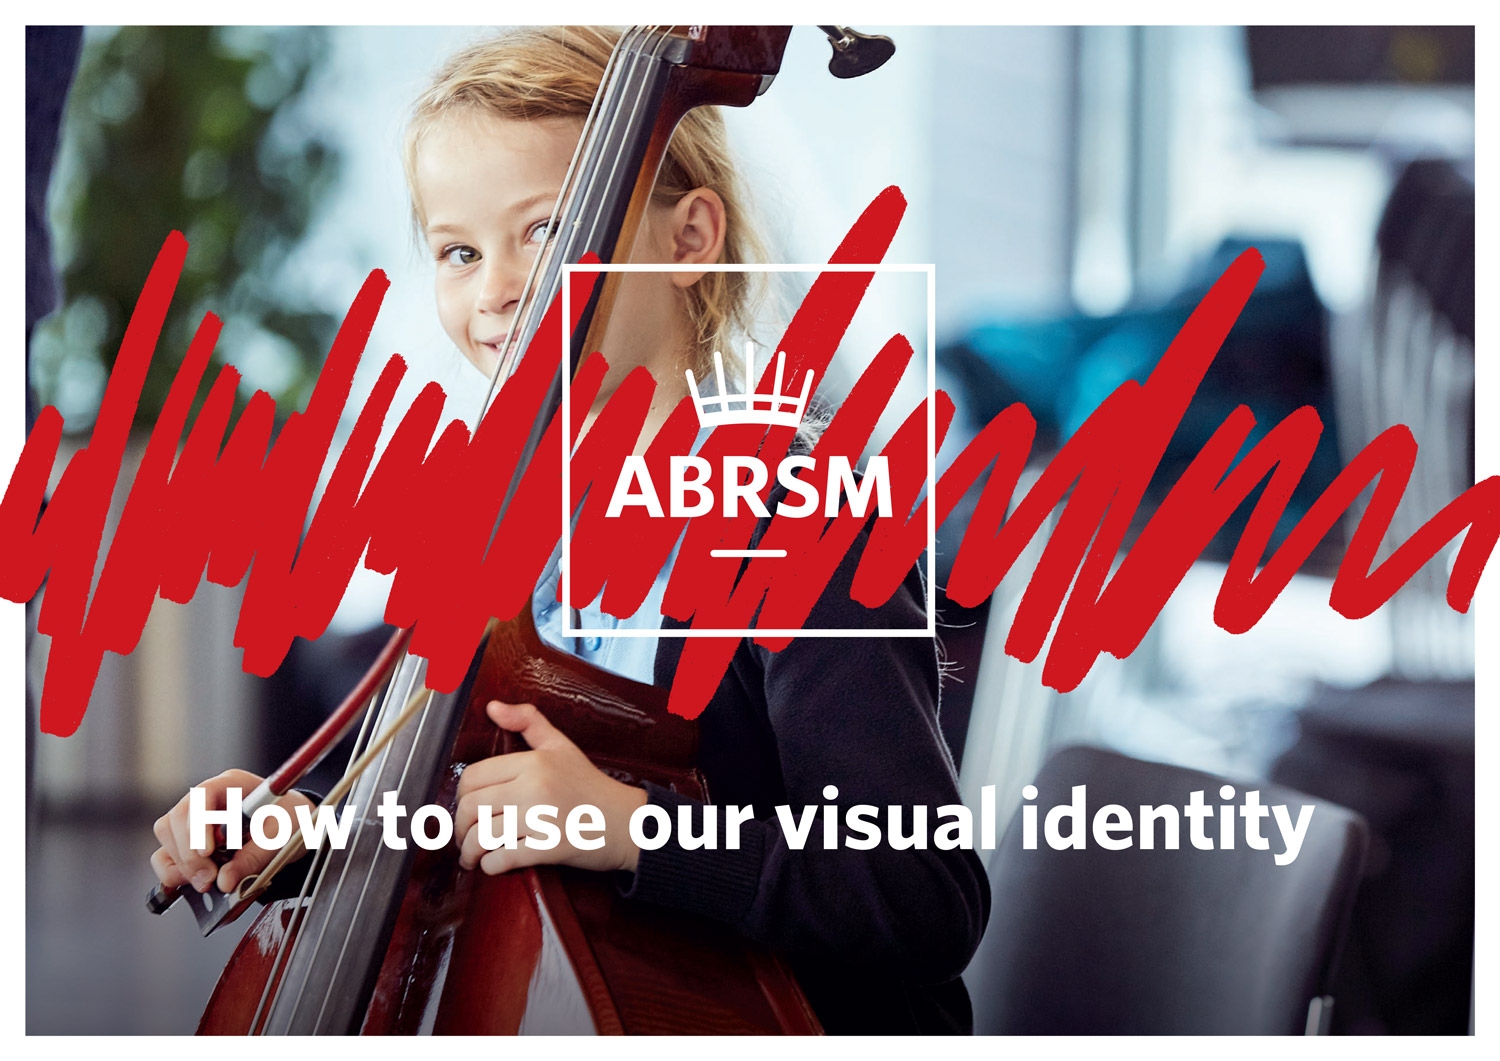 abrsm_how-to-use-our-visual-identity-1